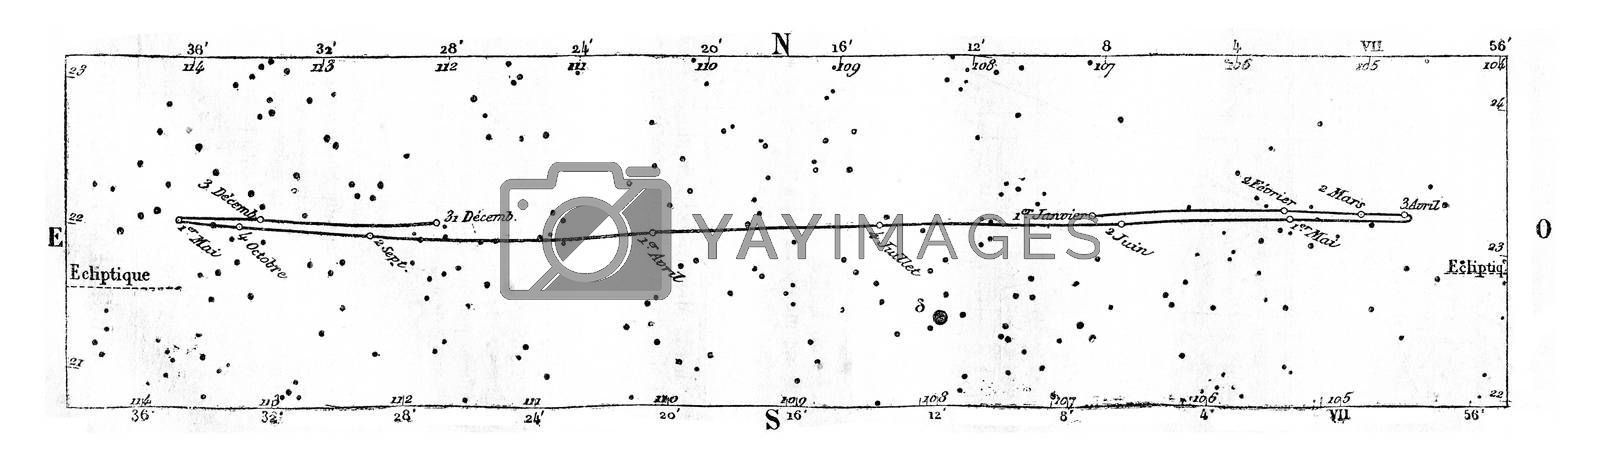 Movement and position of Uranus, vintage engraved illustration. Magasin Pittoresque 1869.